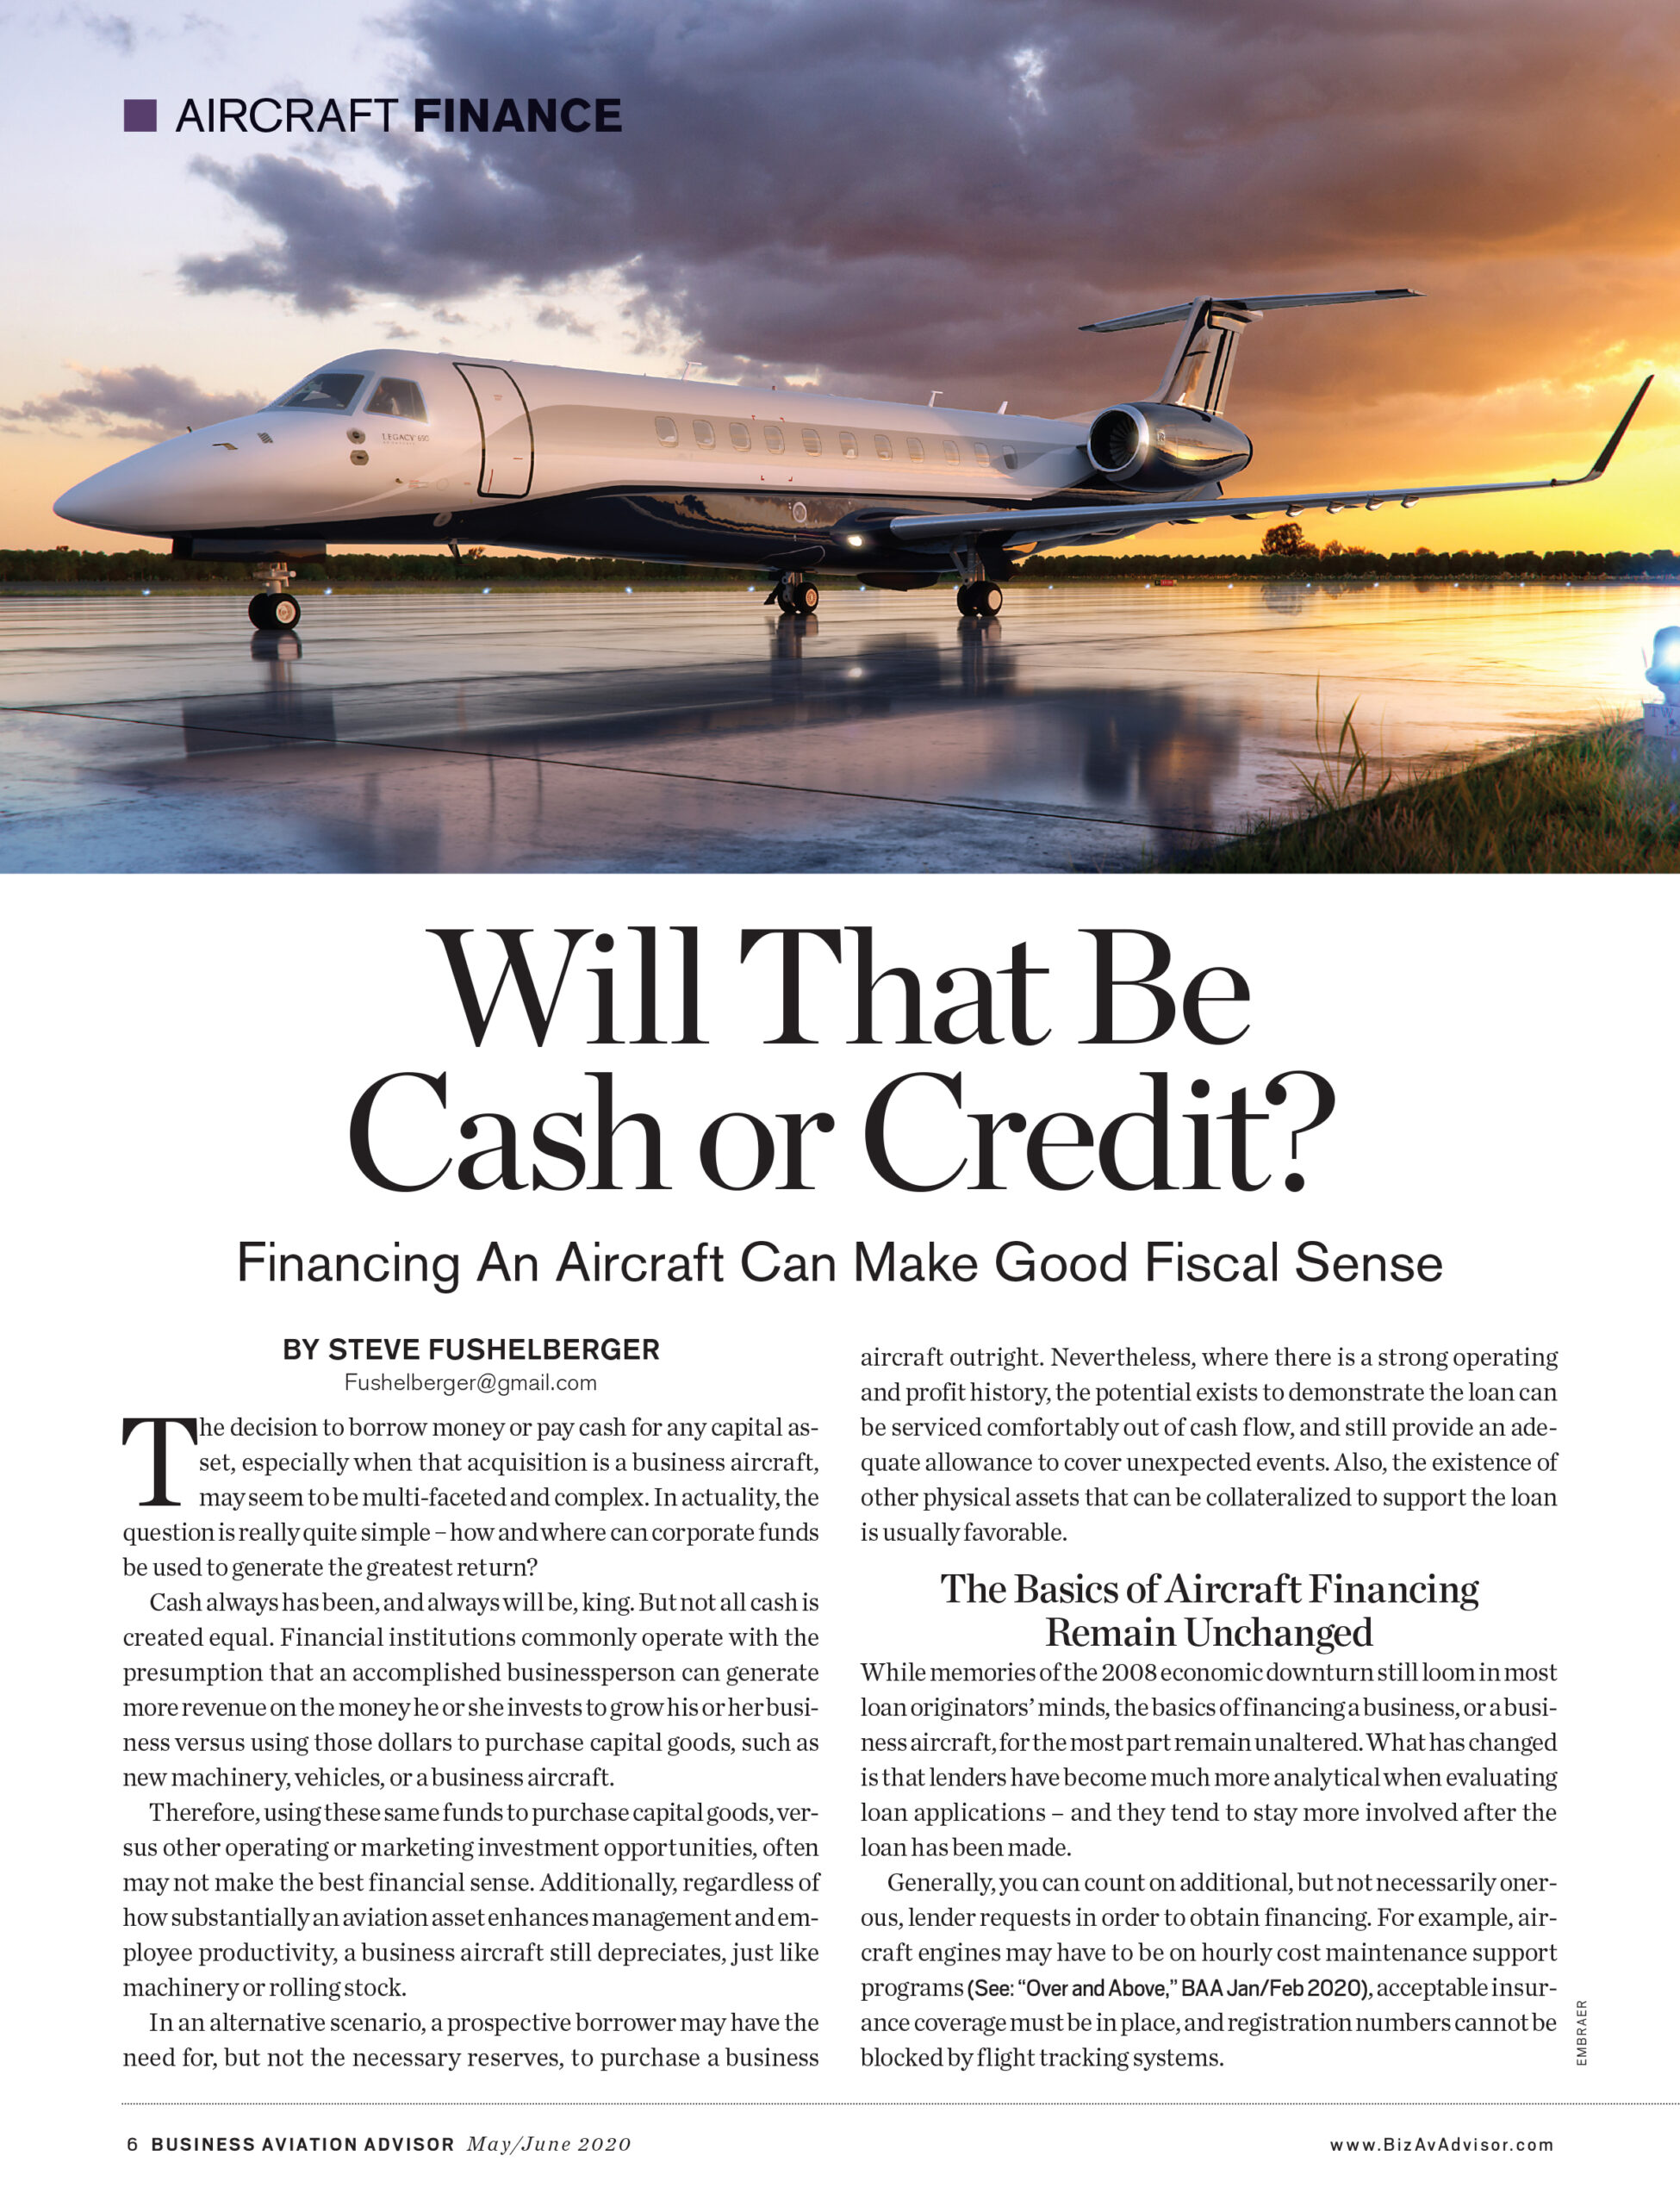 Business Aviation Advisor Featured Article